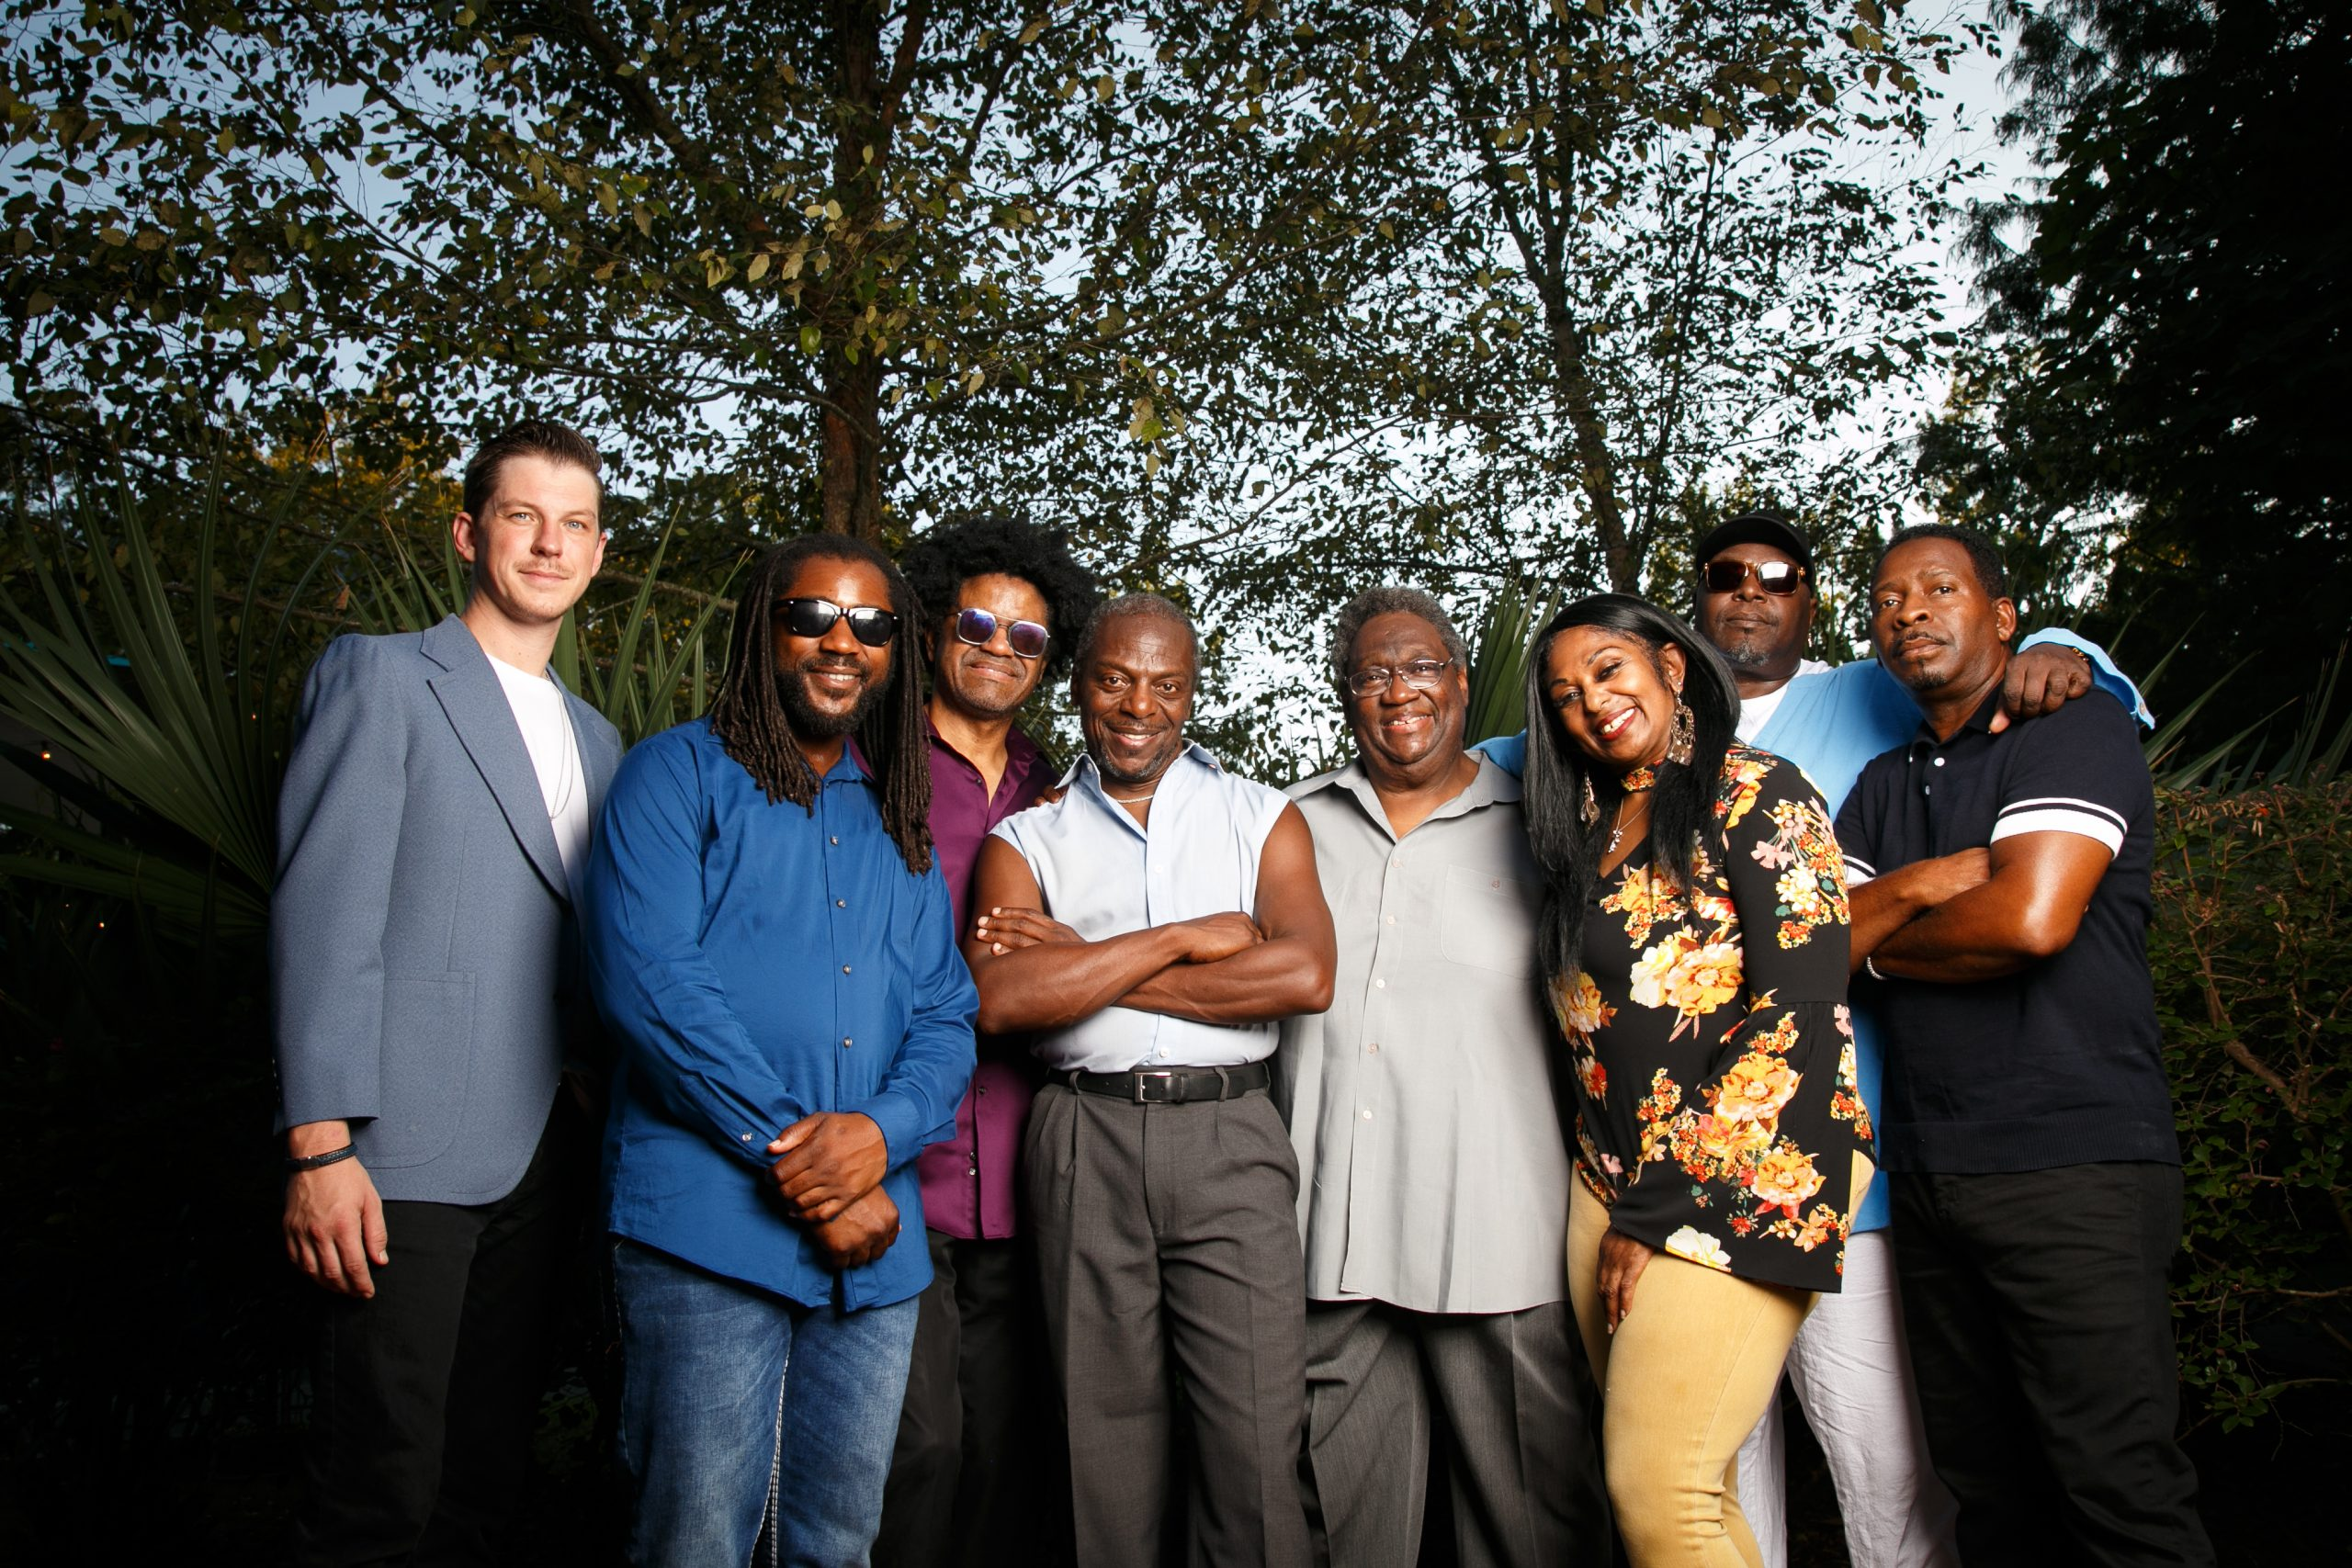 The BB King Blues Band Show am 18.04.2020 in Lindewerra – abgesagt